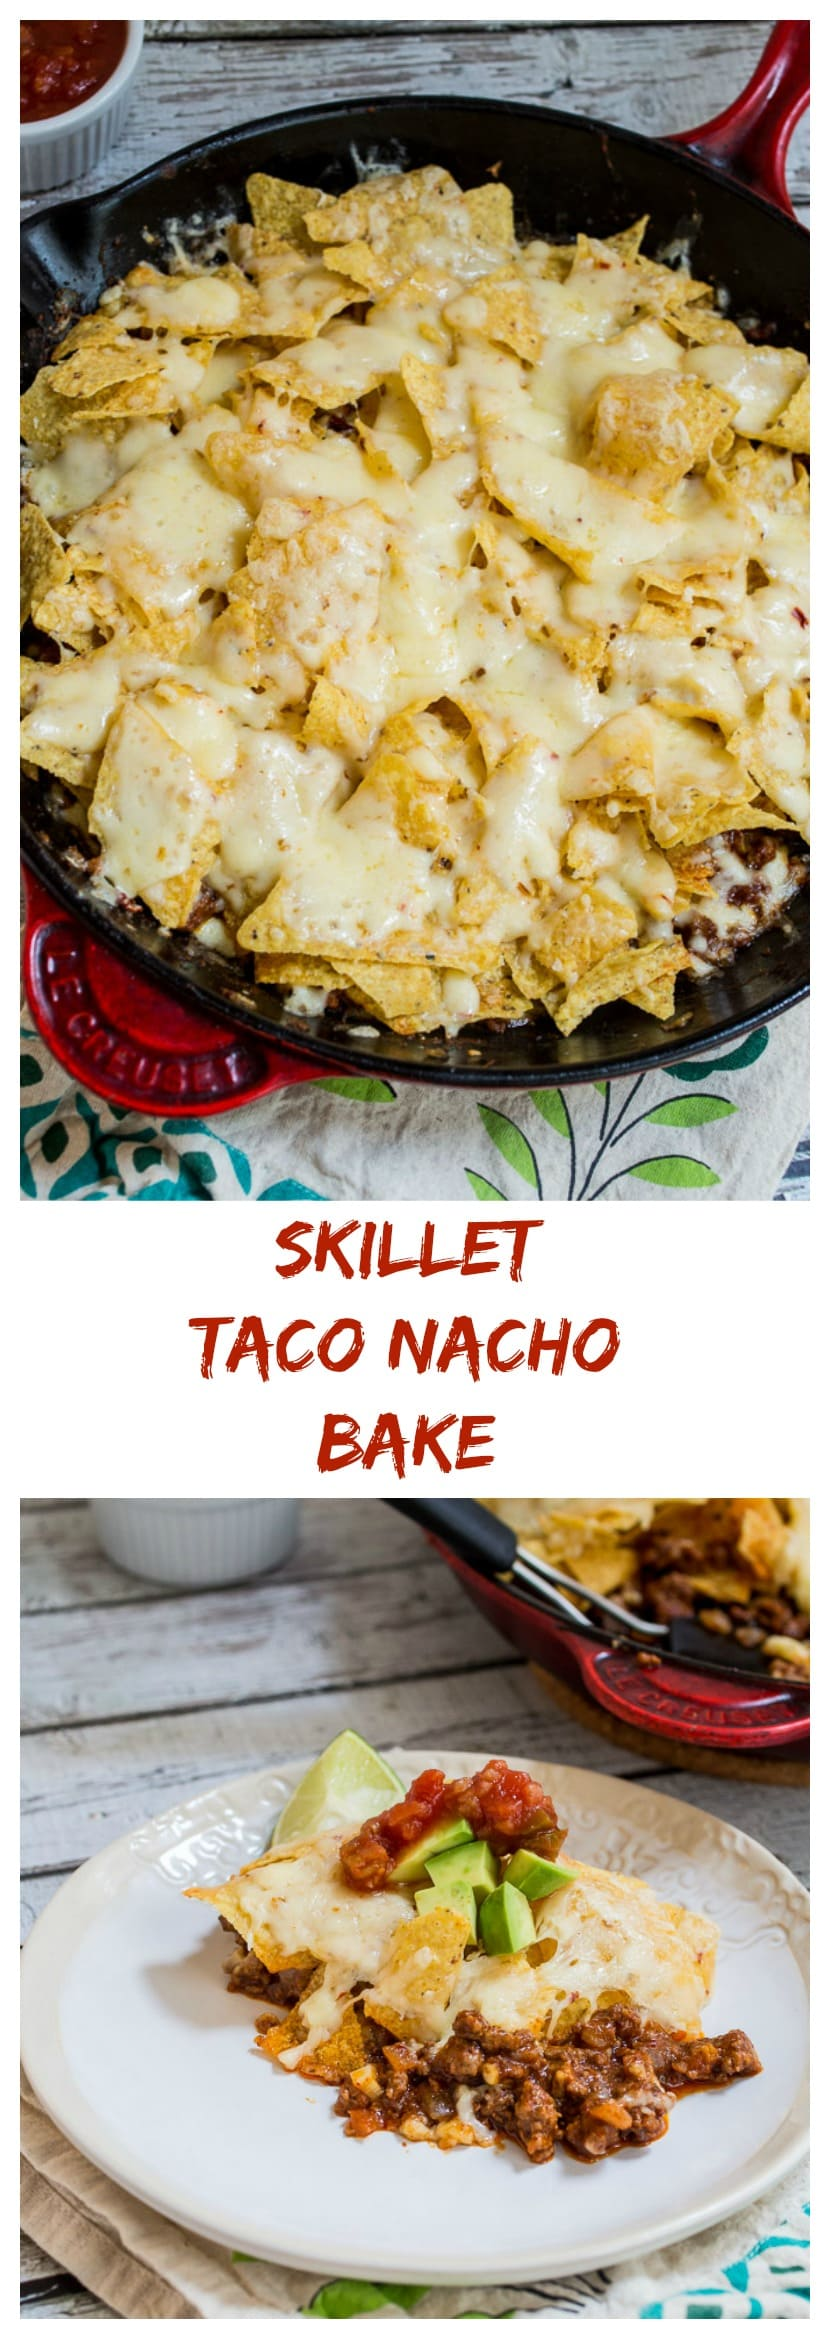 Skillet Taco Nacho Bake from The Girl In The Little Red Kitchen